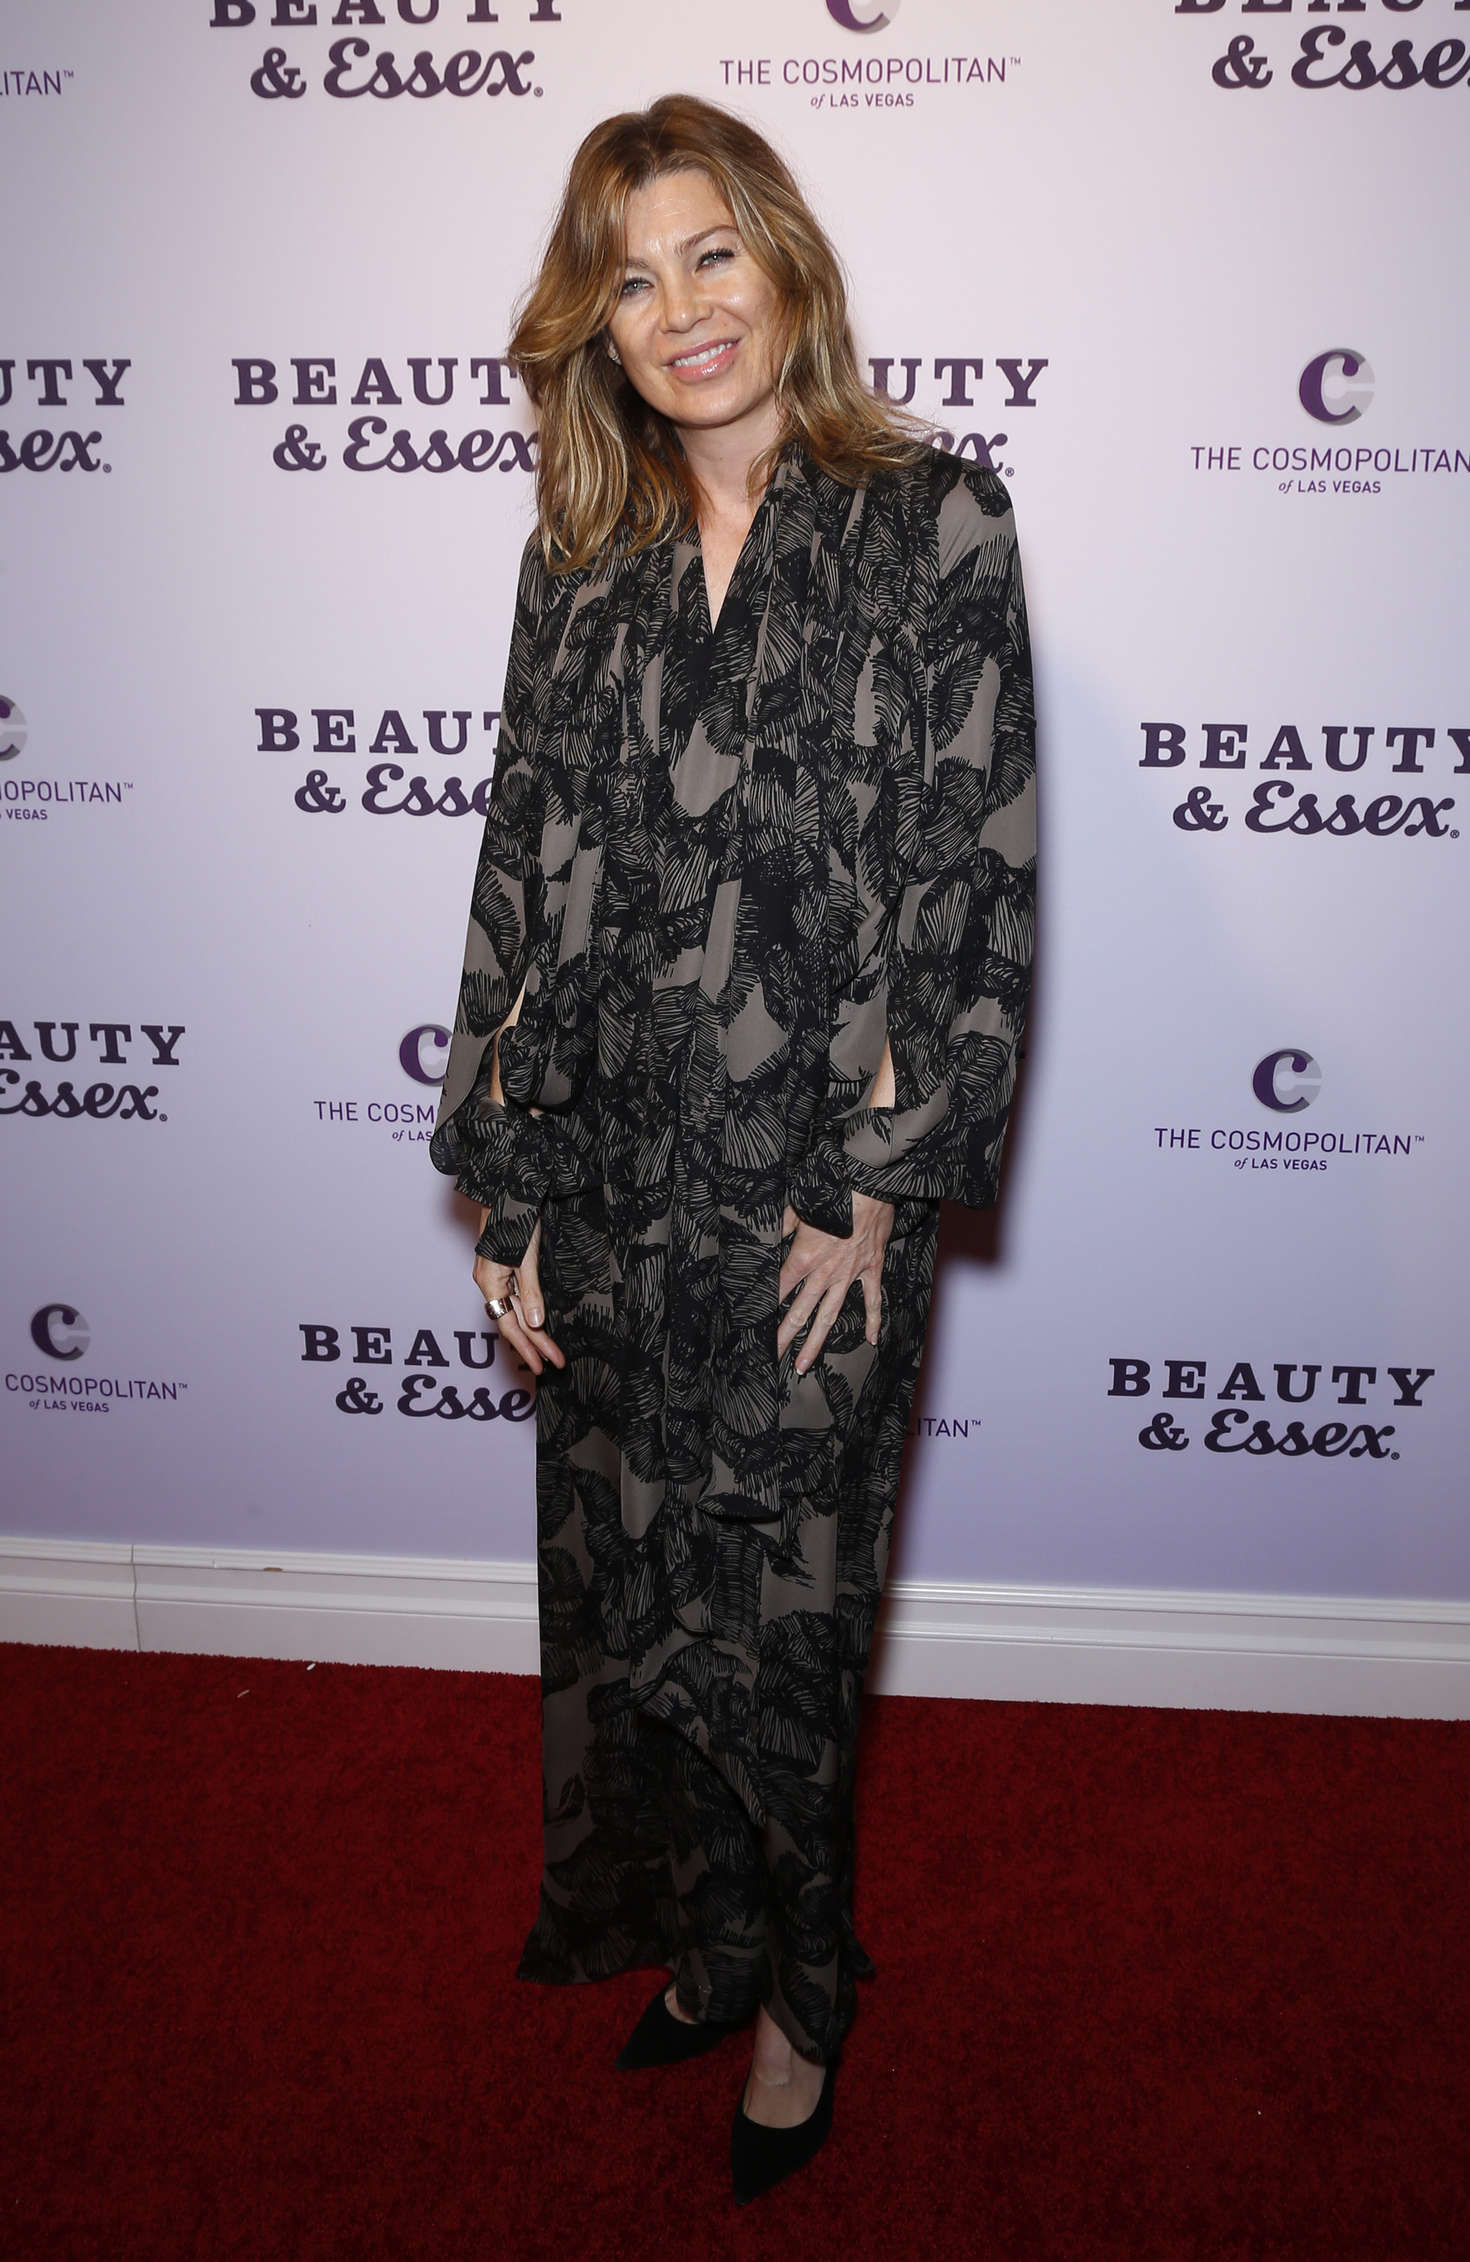 Gabriella Onion Booty with ellen pompeo - grand opening of beauty and essex in las vegas